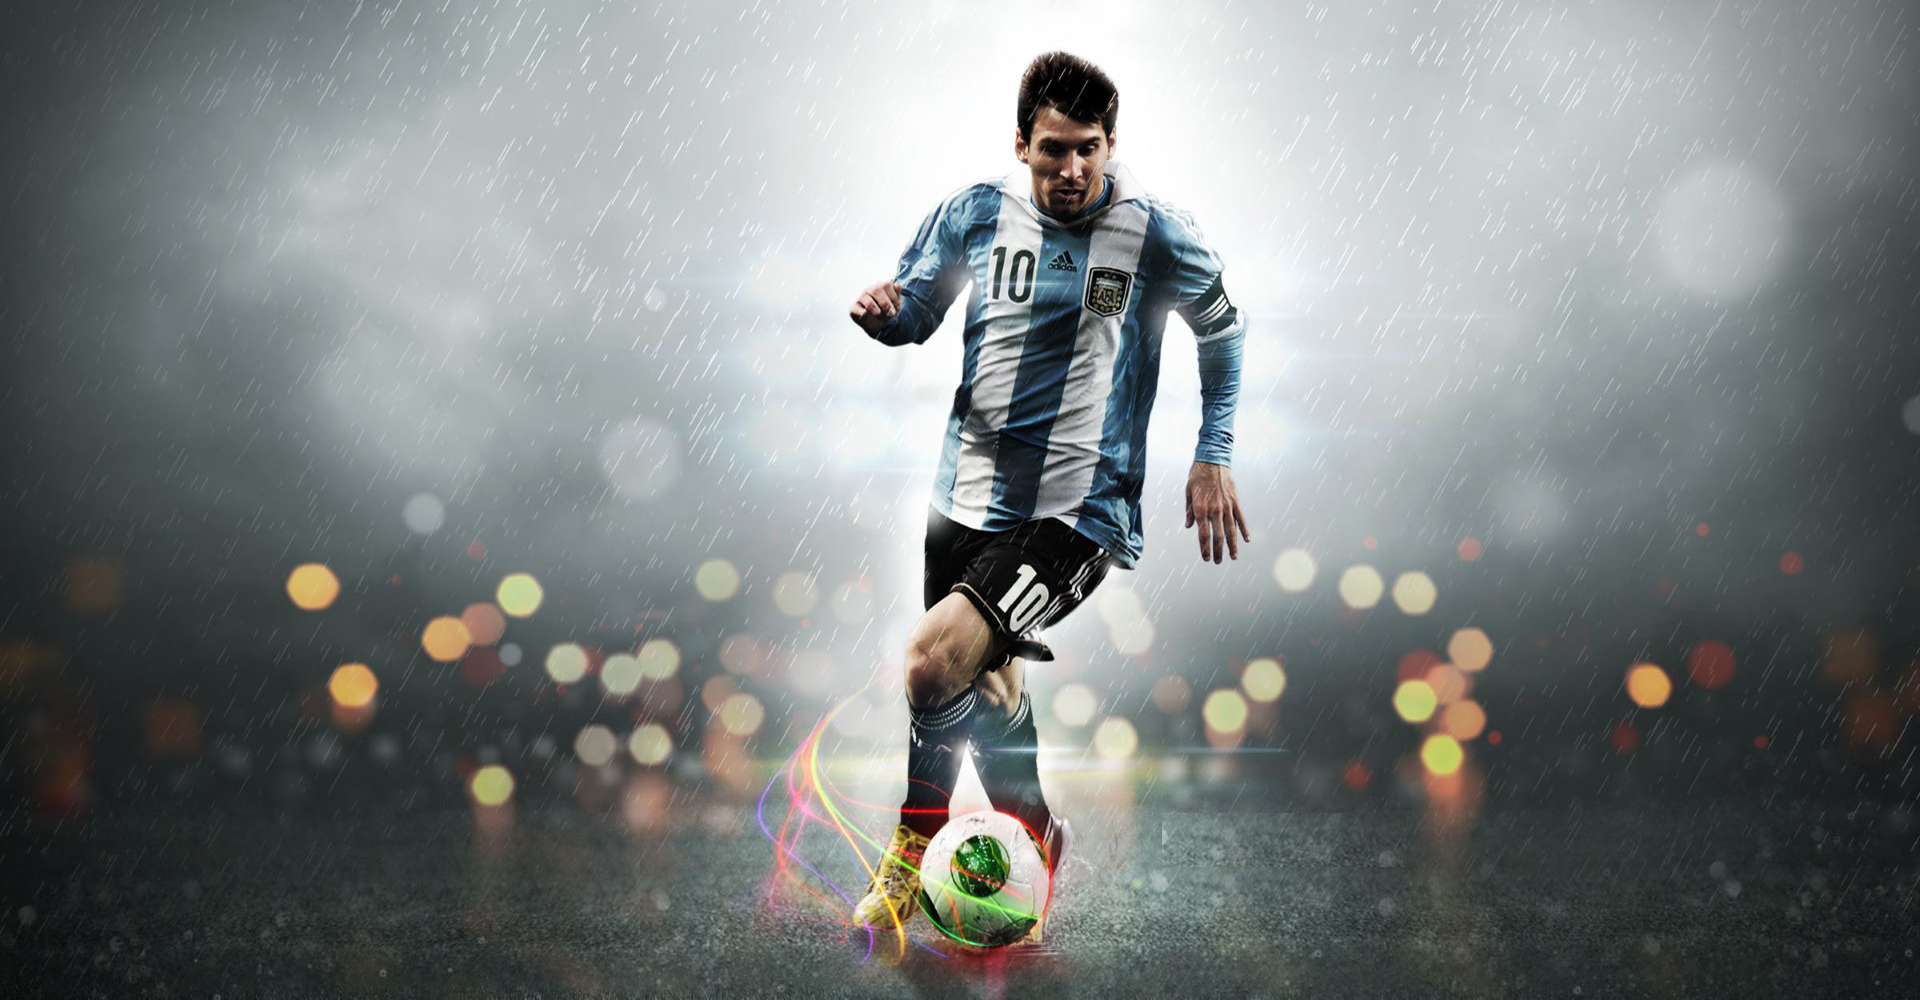 Dribbling Argentina Forward is Lionel Messi 10